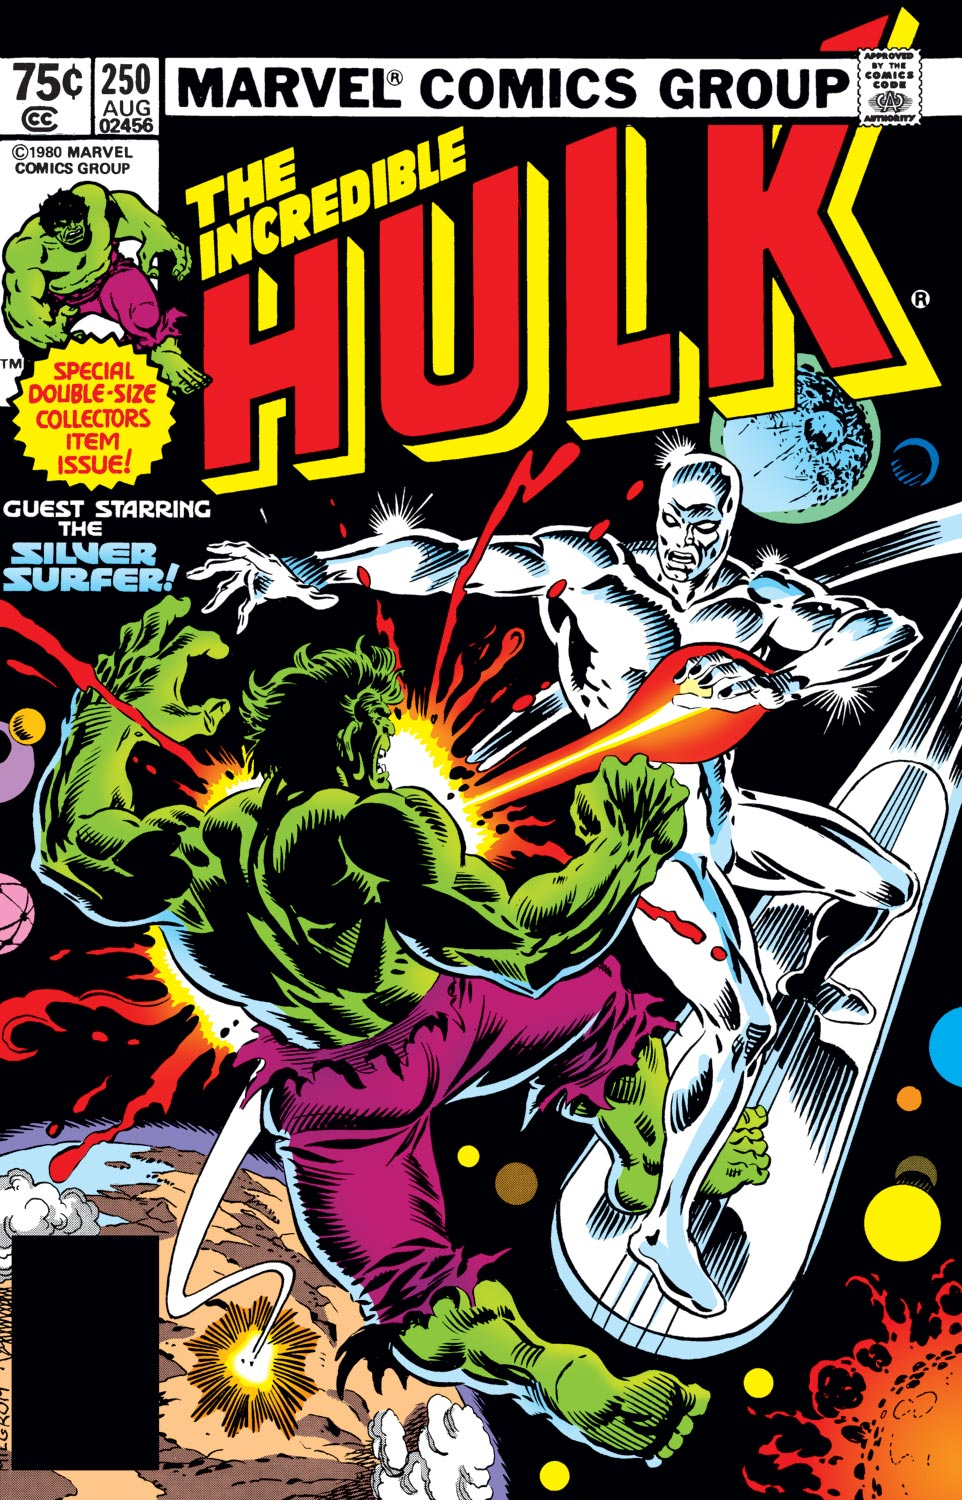 Incredible Hulk (1962) #250